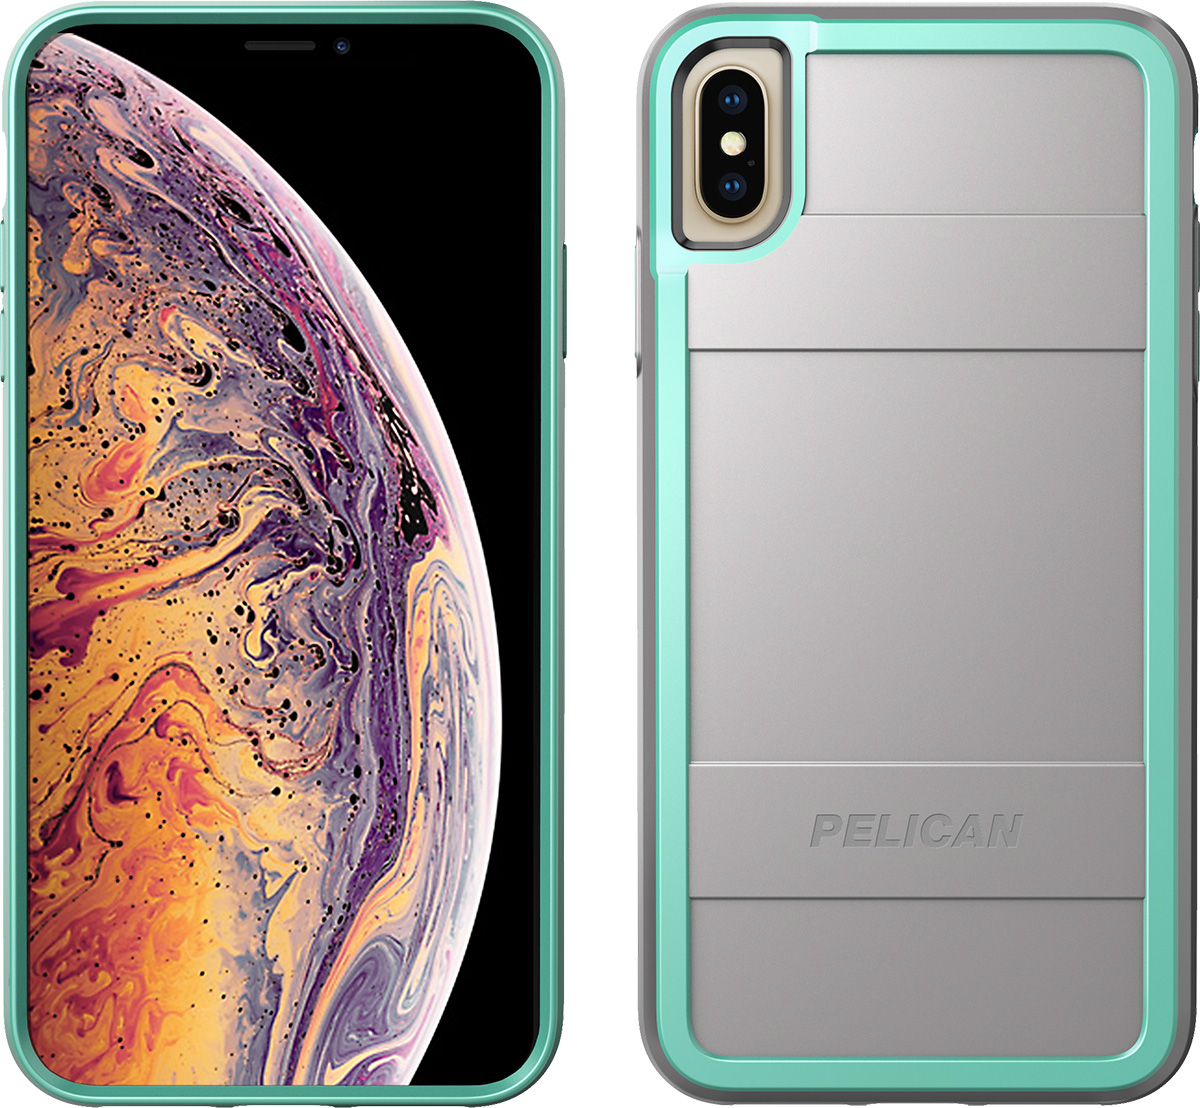 pelican c43000 apple iphone protector grey aqua phone case